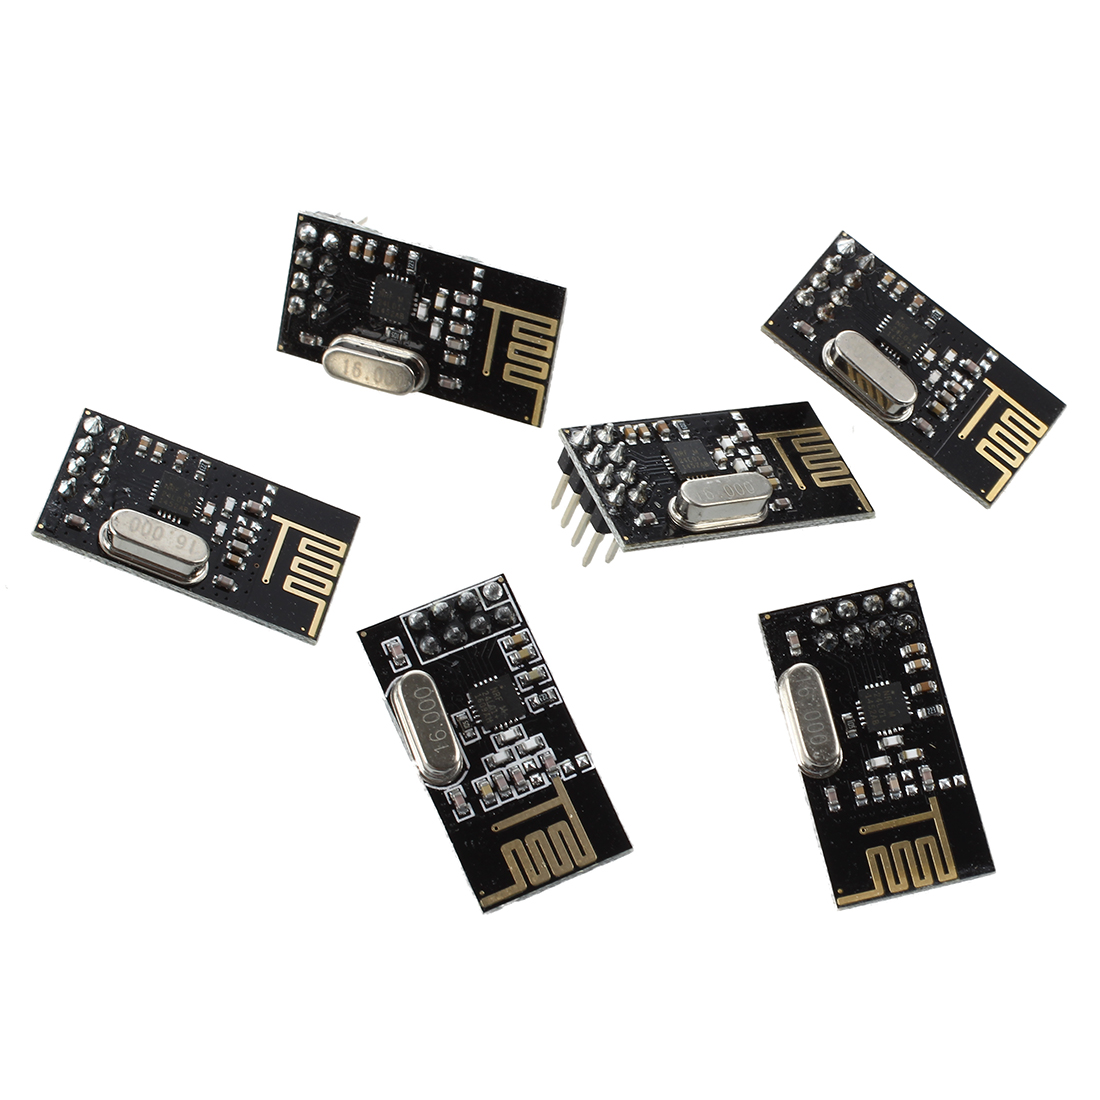 Taidacent 5PCS Lot Full Band Rf Modulator Wireless 2.4 ghz Transceiver IC Cc2500 Rf Module for Water Meter Remote Control SPI Interface